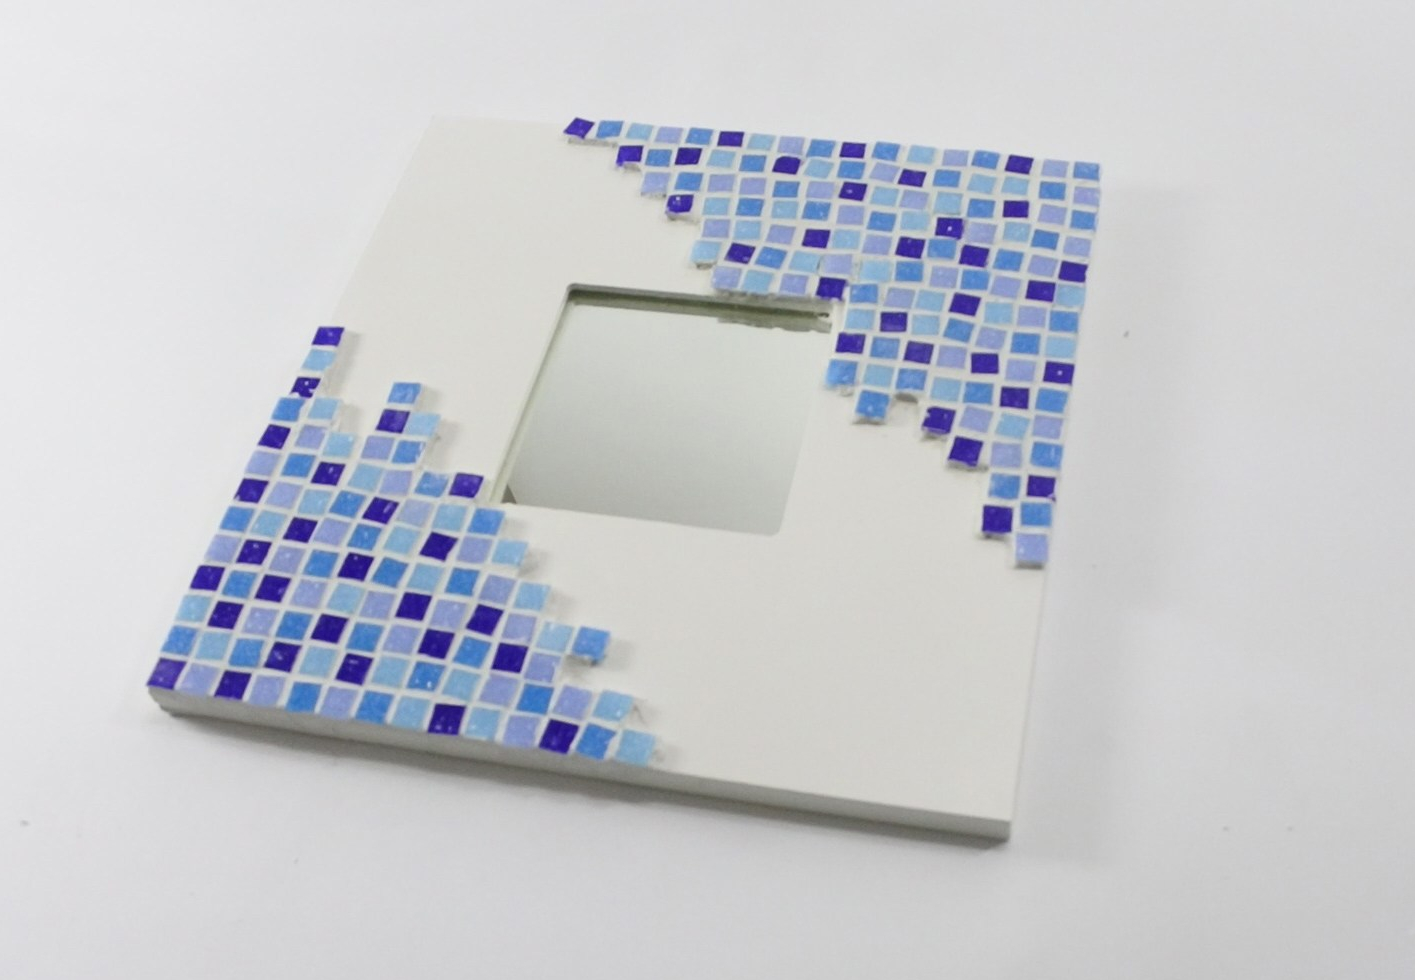 DIY IKEA HACK ESPEJO MALMA MOSAICO FINAL2 (1)